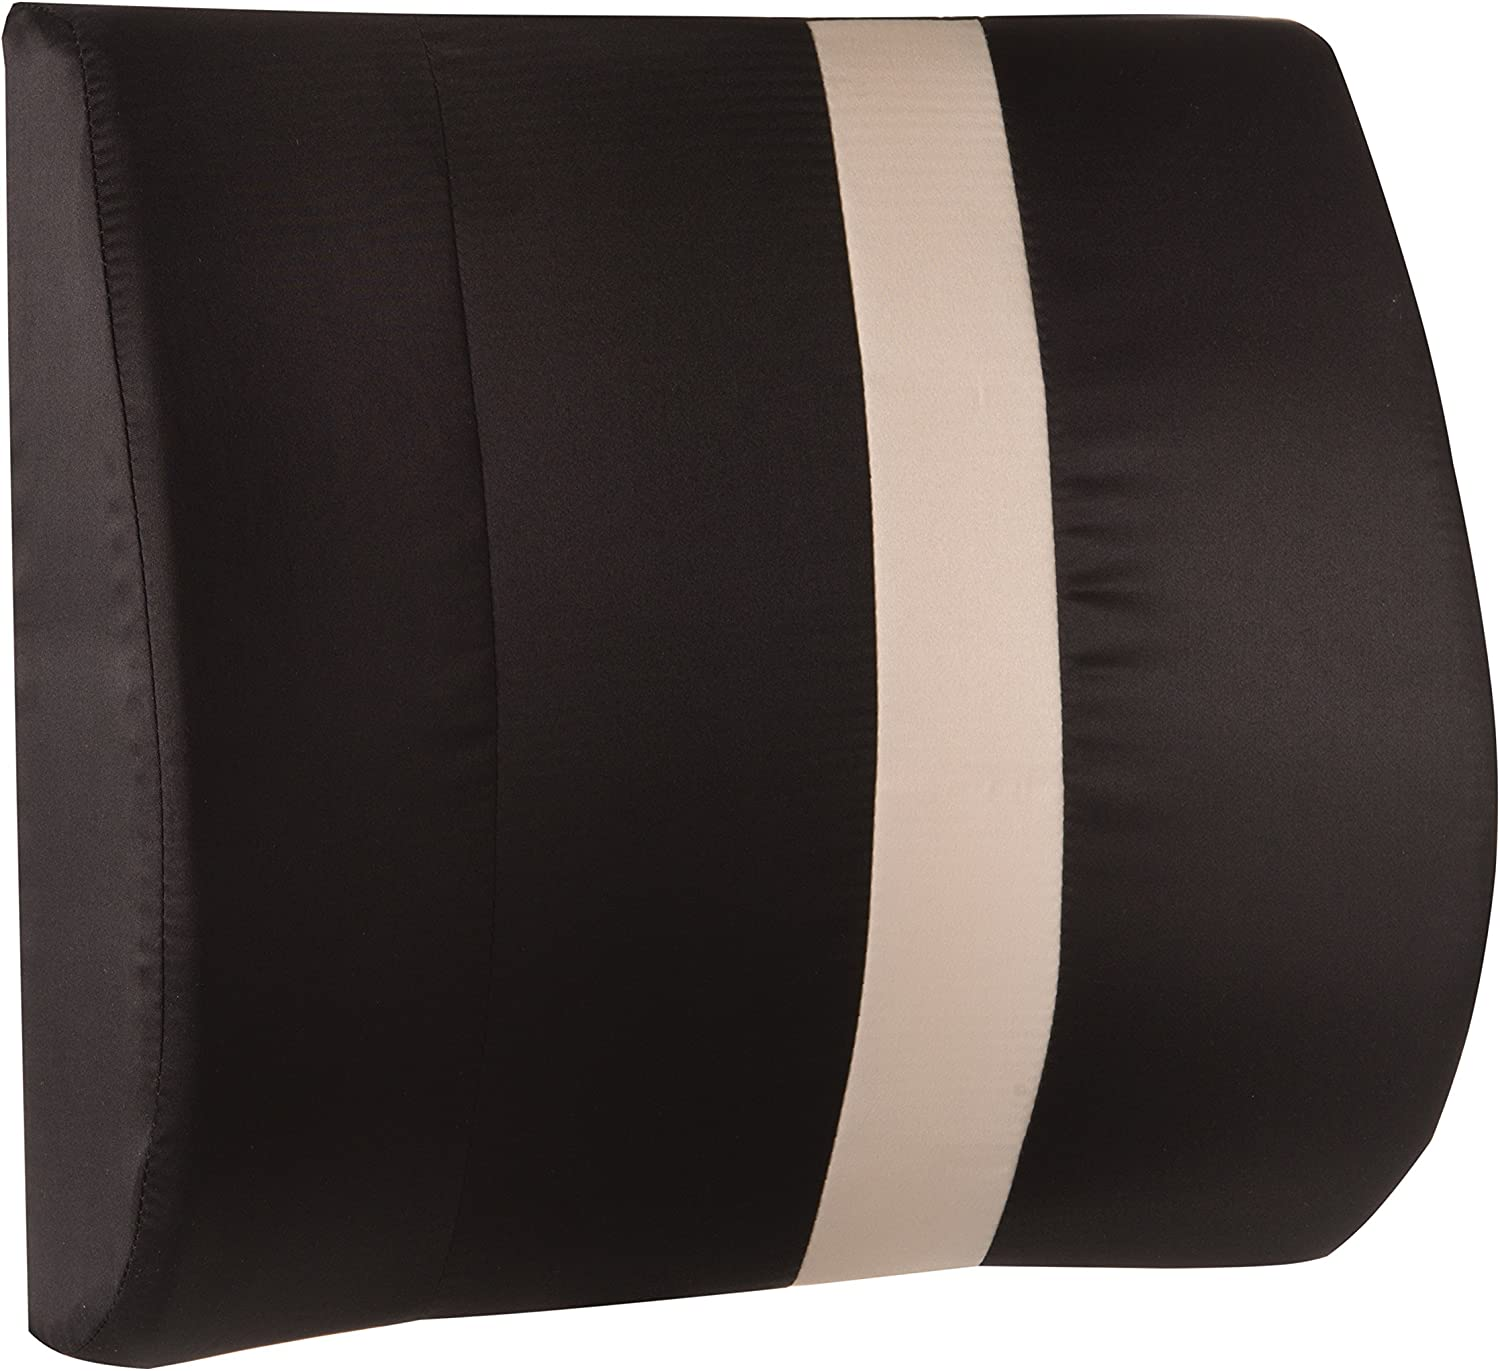 HealthSmart Relax-A-Bac Premium Lumbar Cushion ! Super beauty product restock quality top! Max 61% OFF Support Pill Back